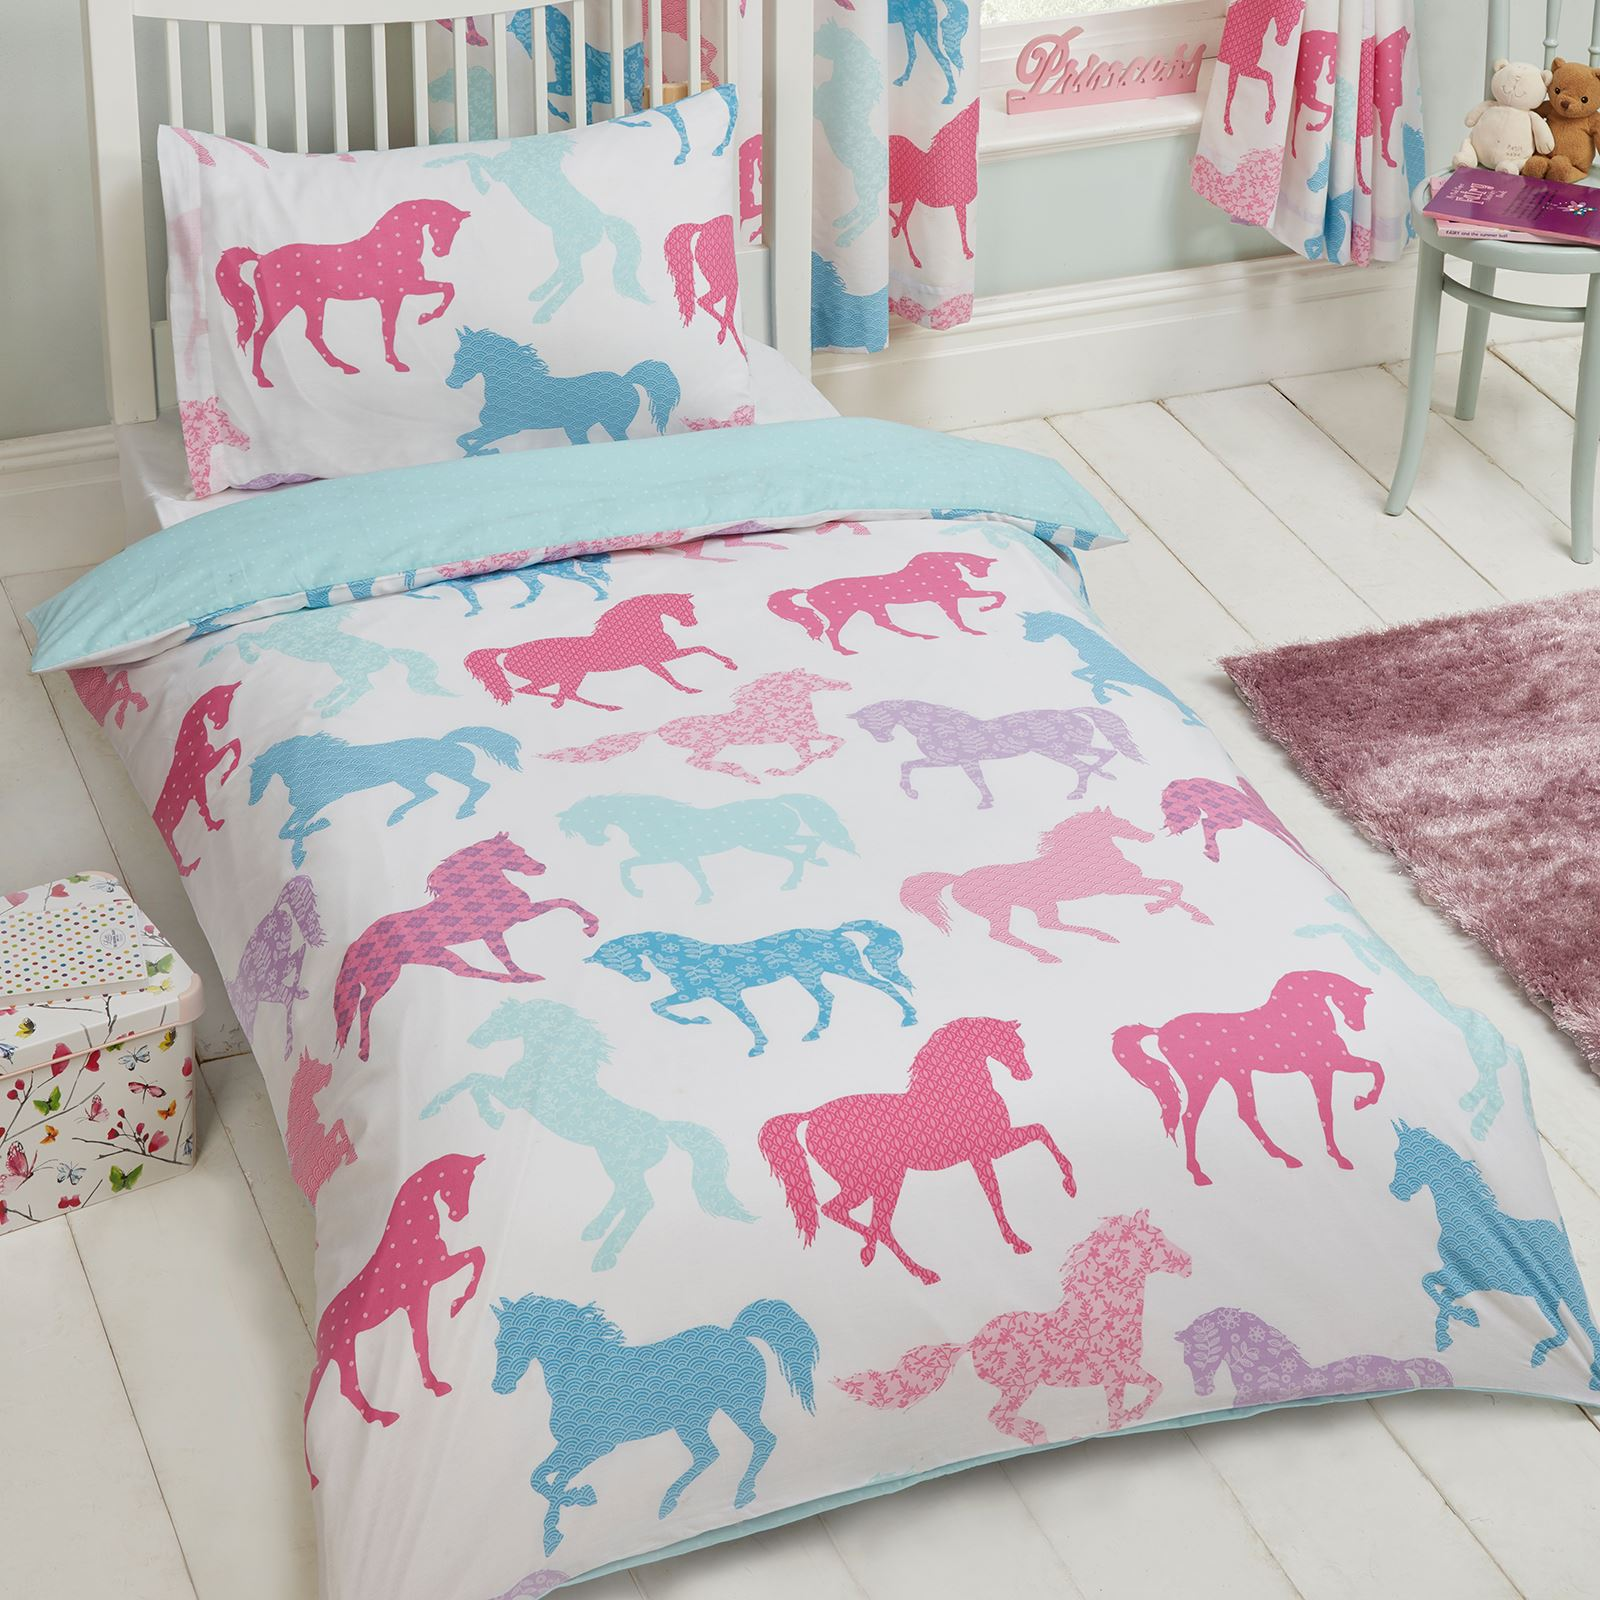 Kids Single Duvet Cover Sets Boys Girls Unicorn Dinosaur